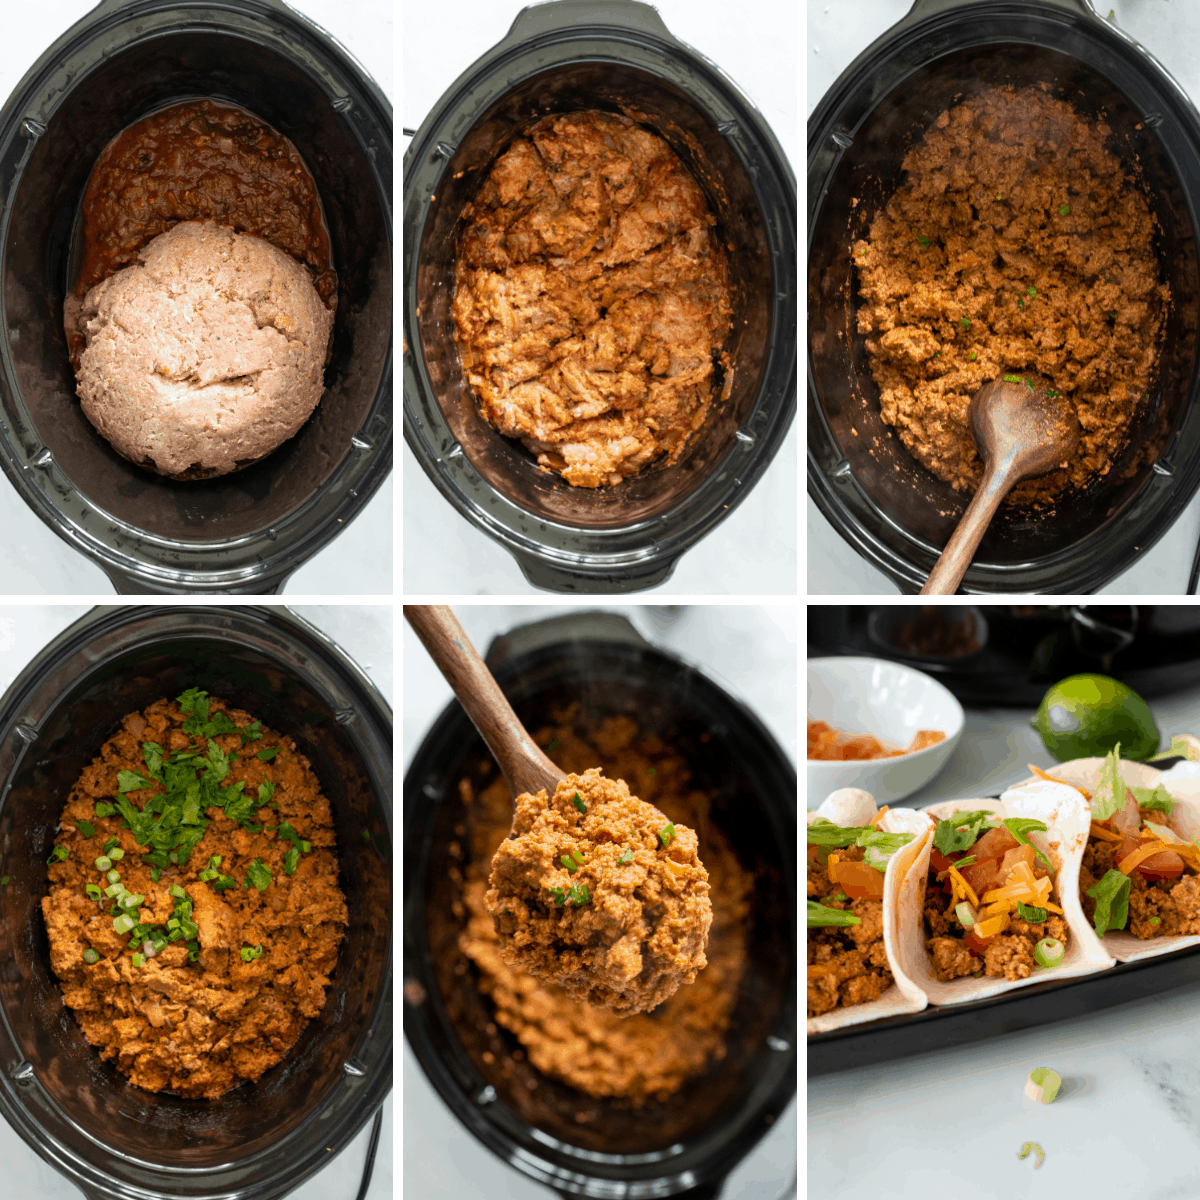 another collage showing the last steps for making crockpot turkey tacos.